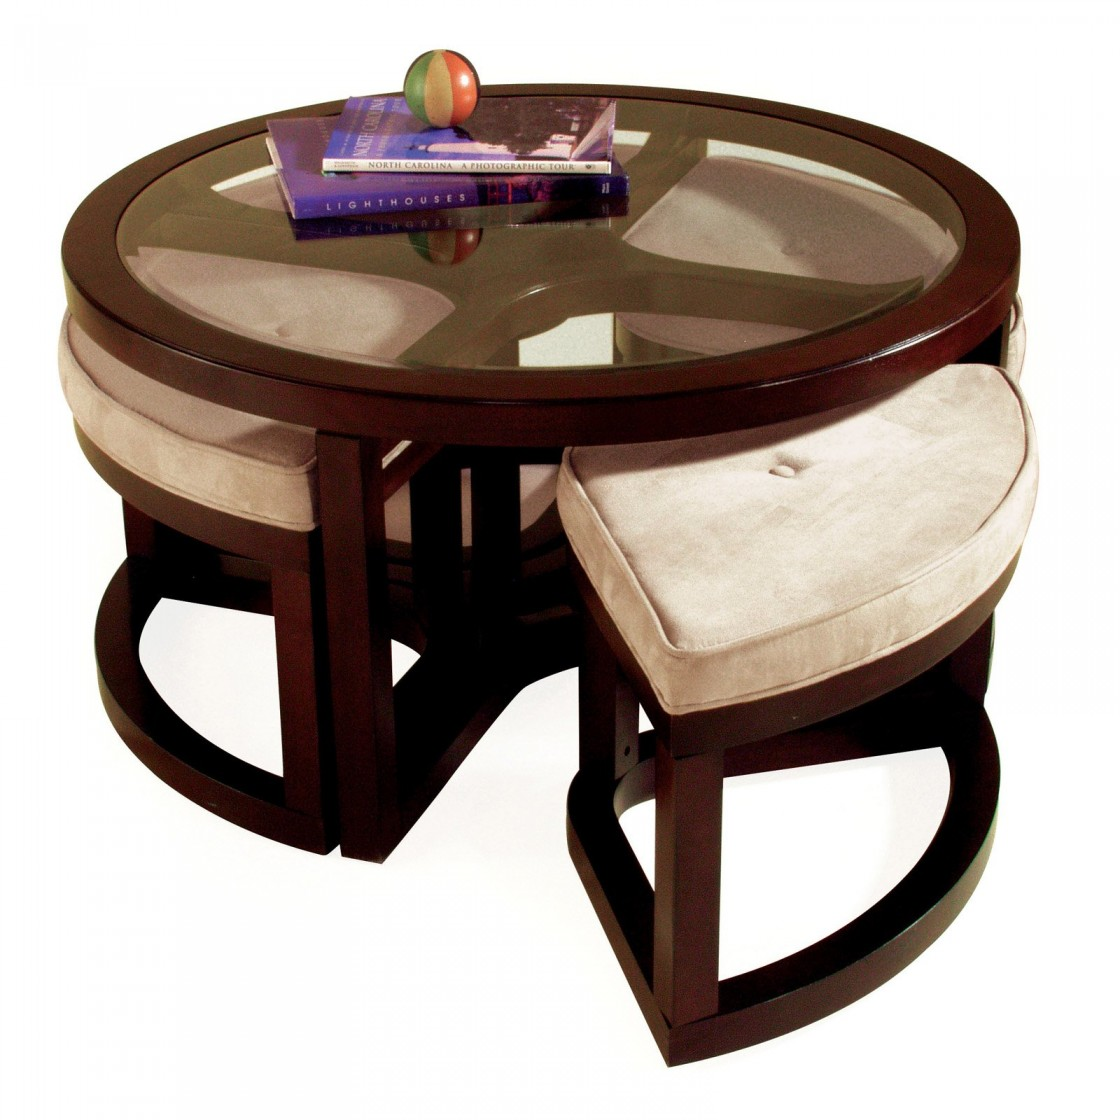 Round Coffee Table With Seating Underneath Round Coffee Table With Ottomans Underneath Cocktail Table With Seating Underneath (Image 7 of 10)